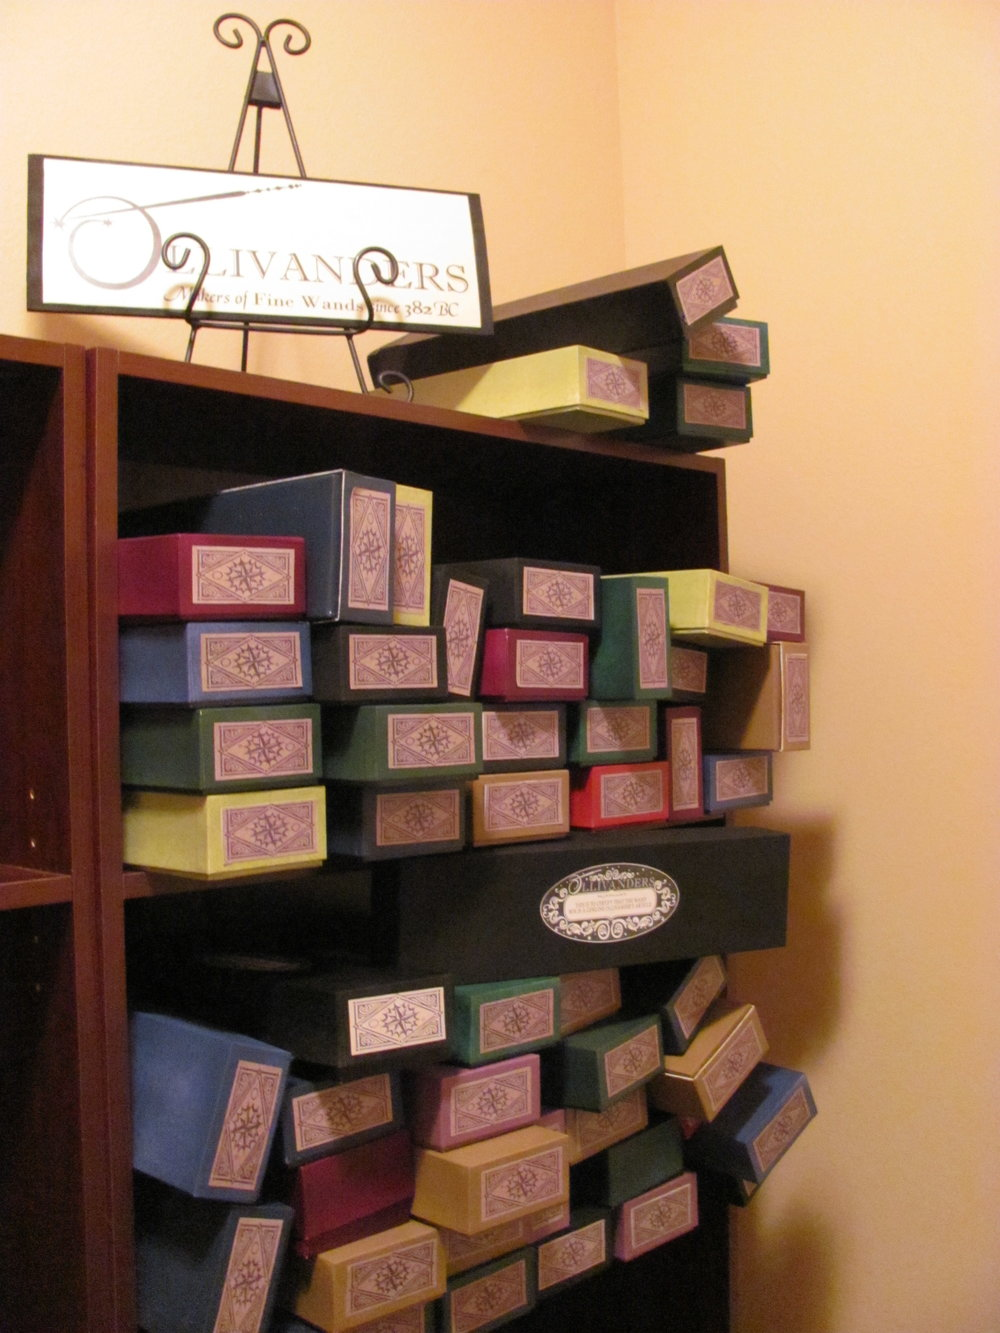 We purchased 100 long business card boxes ... and painted each and every single one! This took a long time. Like a really long time. And then they needed the proper labels to make the Ollivander's wand boxes complete.